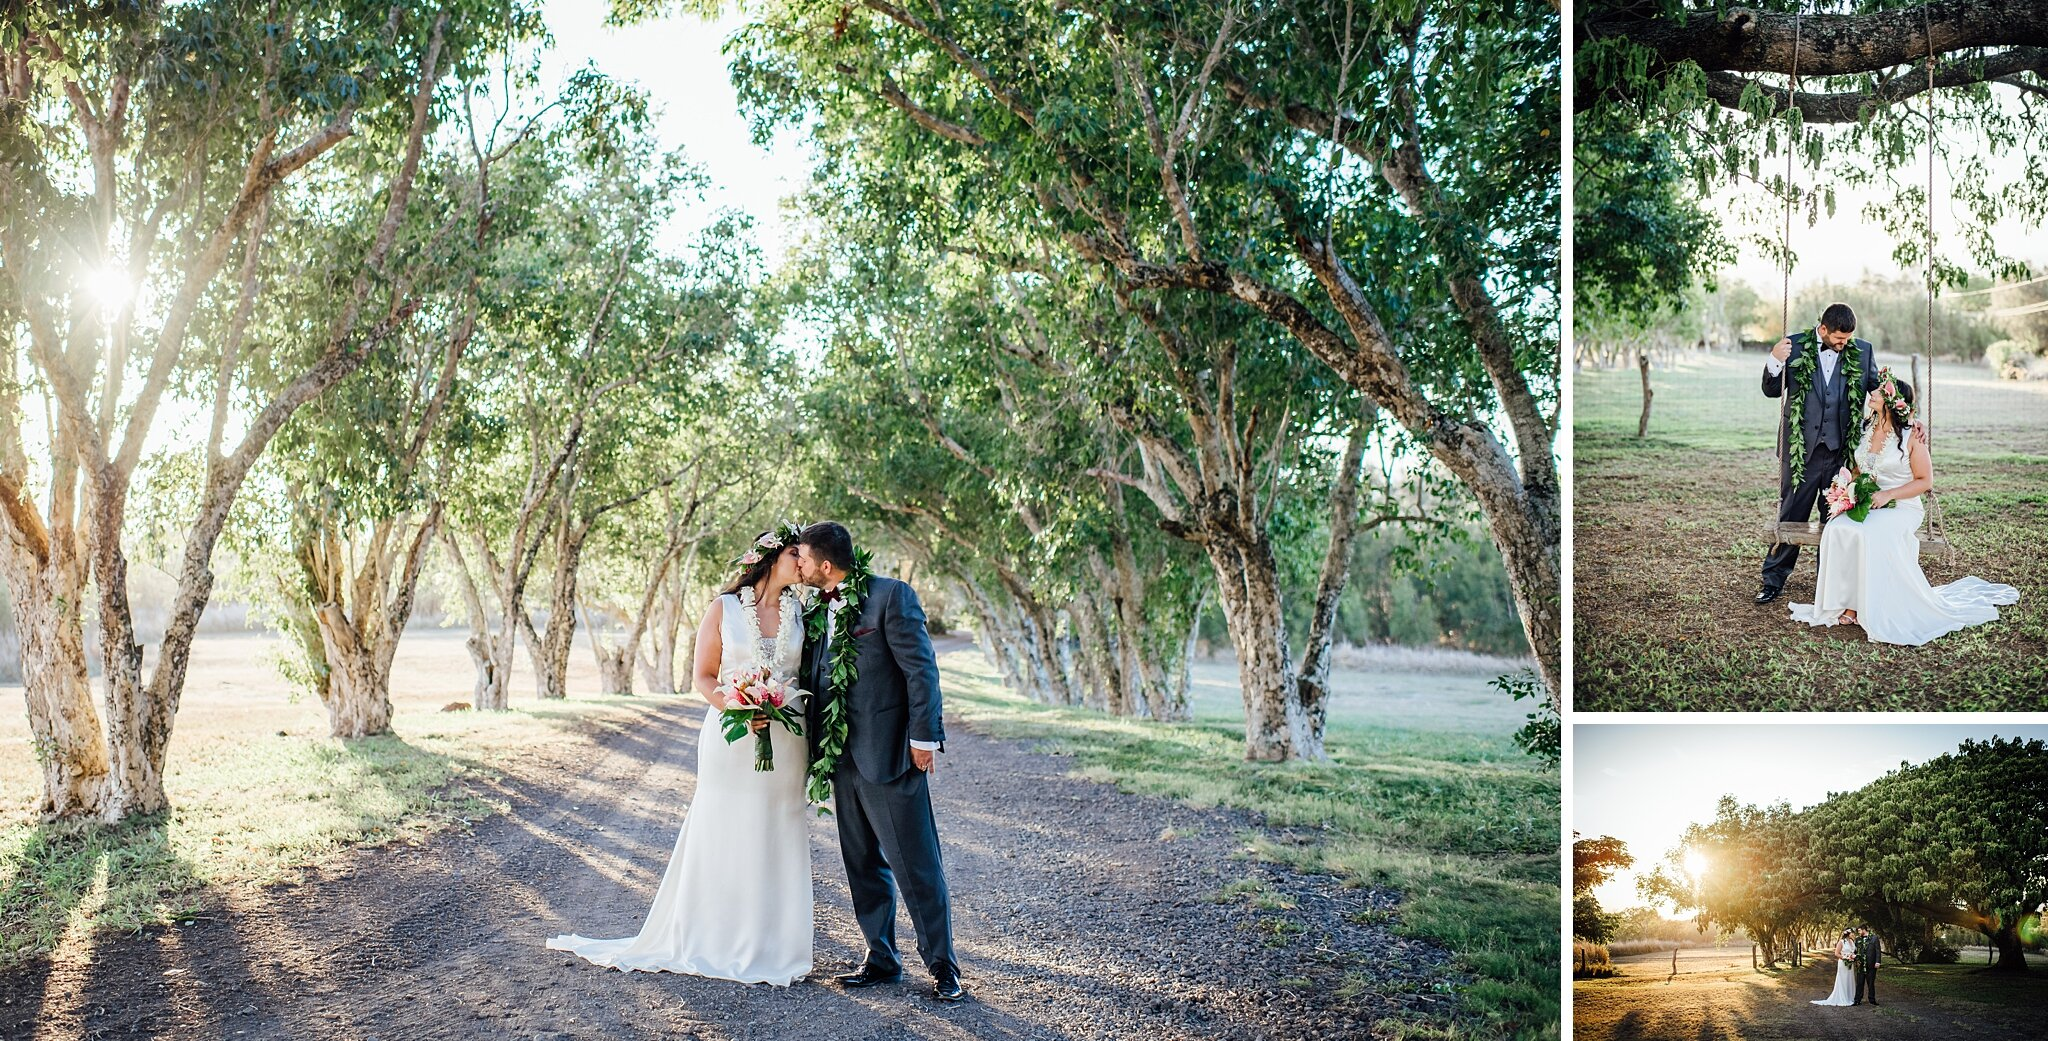 Big Island Wedding Venue at Puakea Ranch by Ann Ferguson Photography